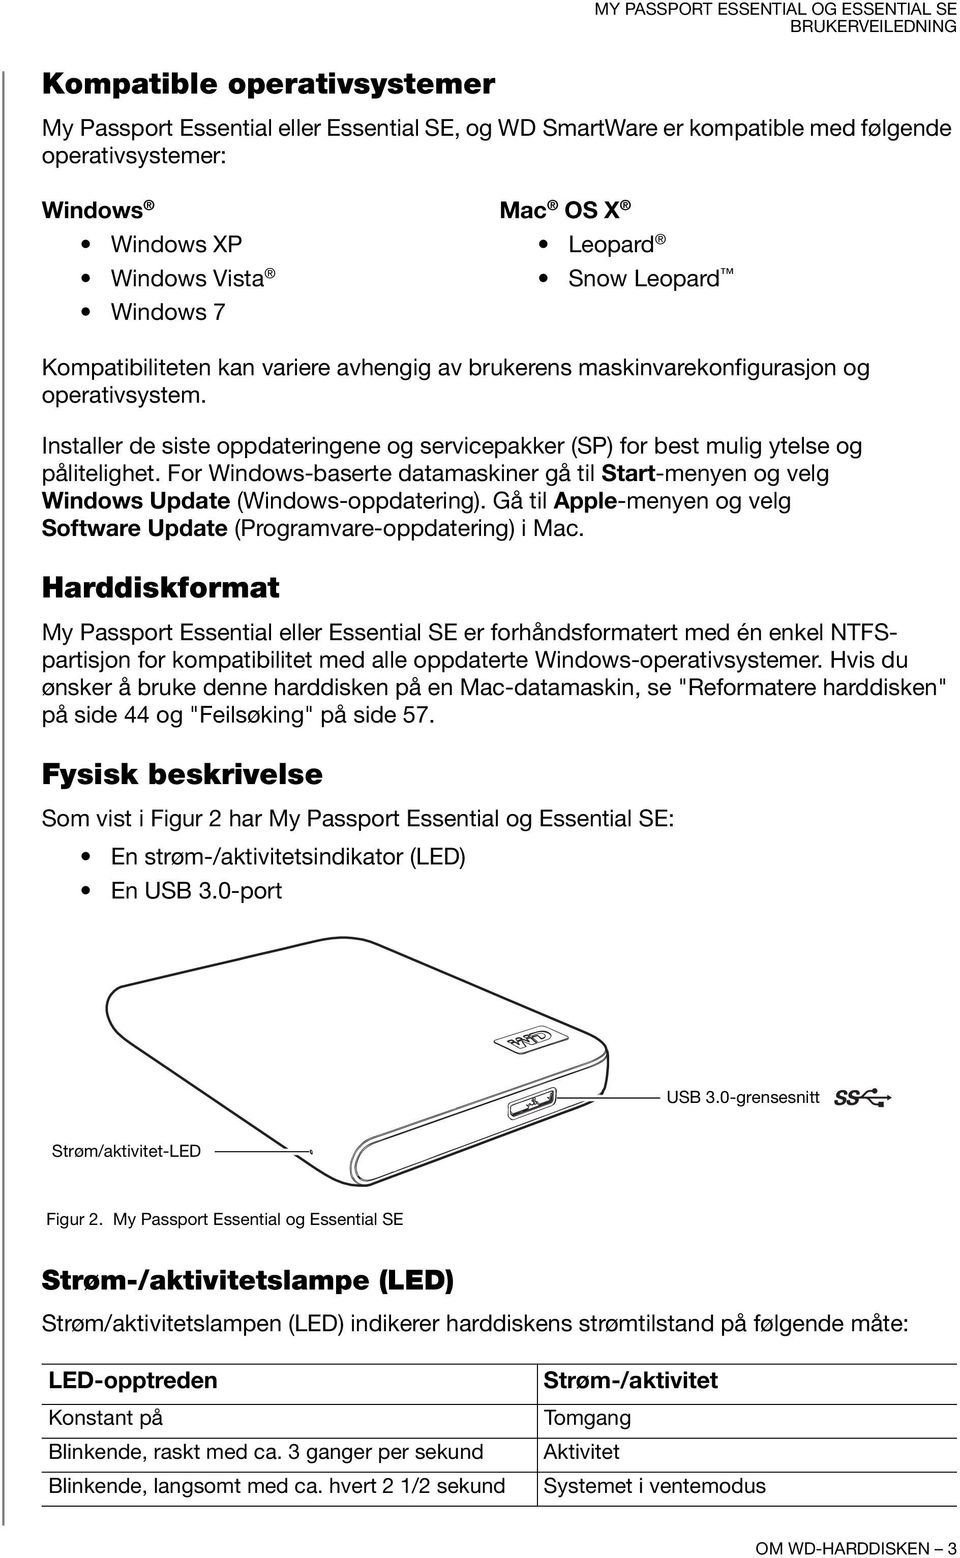 For Windows-baserte datamaskiner gå til Start-menyen og velg Windows Update (Windows-oppdatering). Gå til Apple-menyen og velg Software Update (Programvare-oppdatering) i Mac.